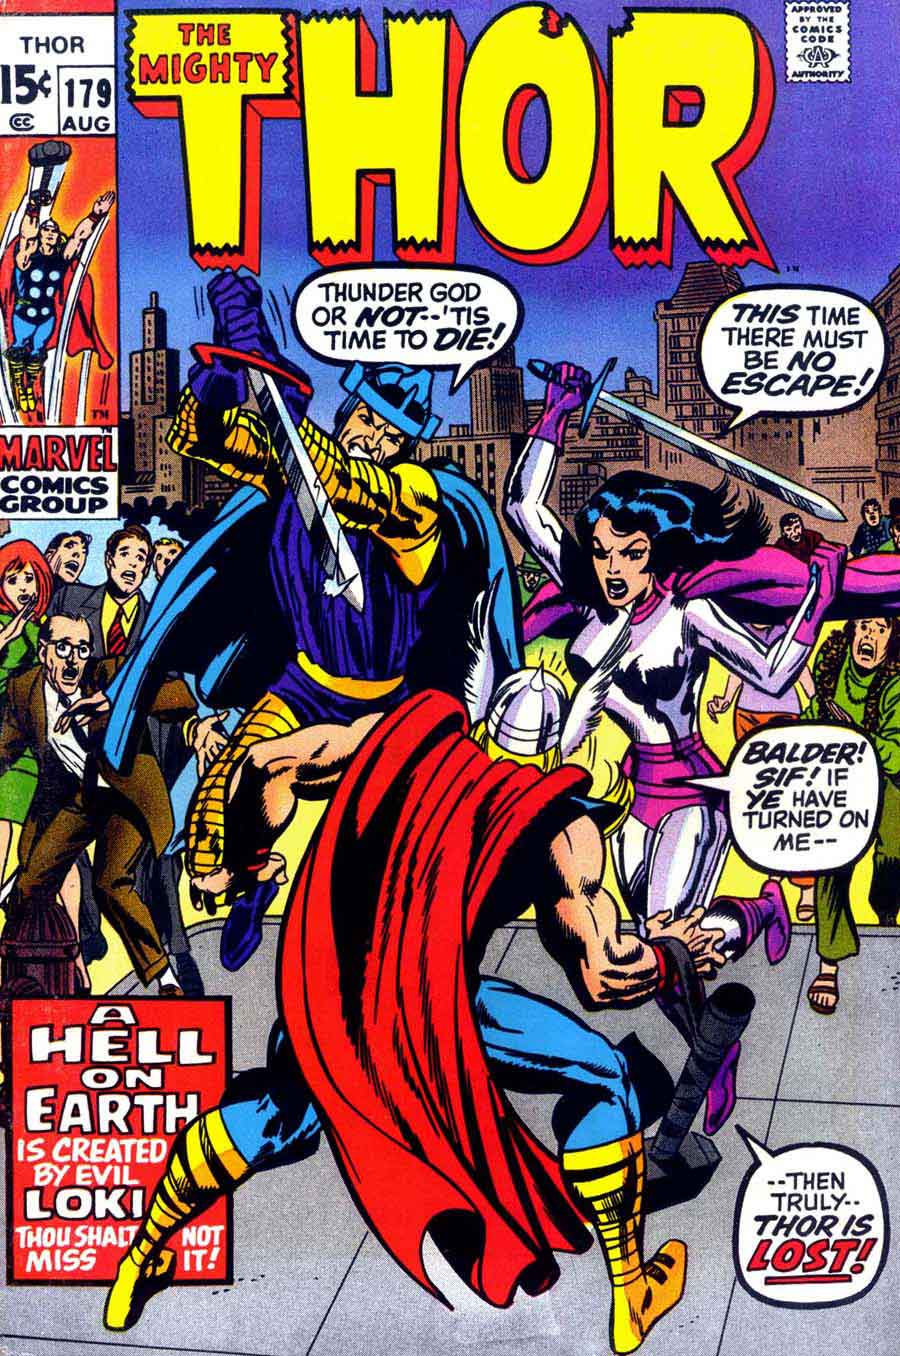 Thor v1 #179 marvel comic book cover art by Neal Adams